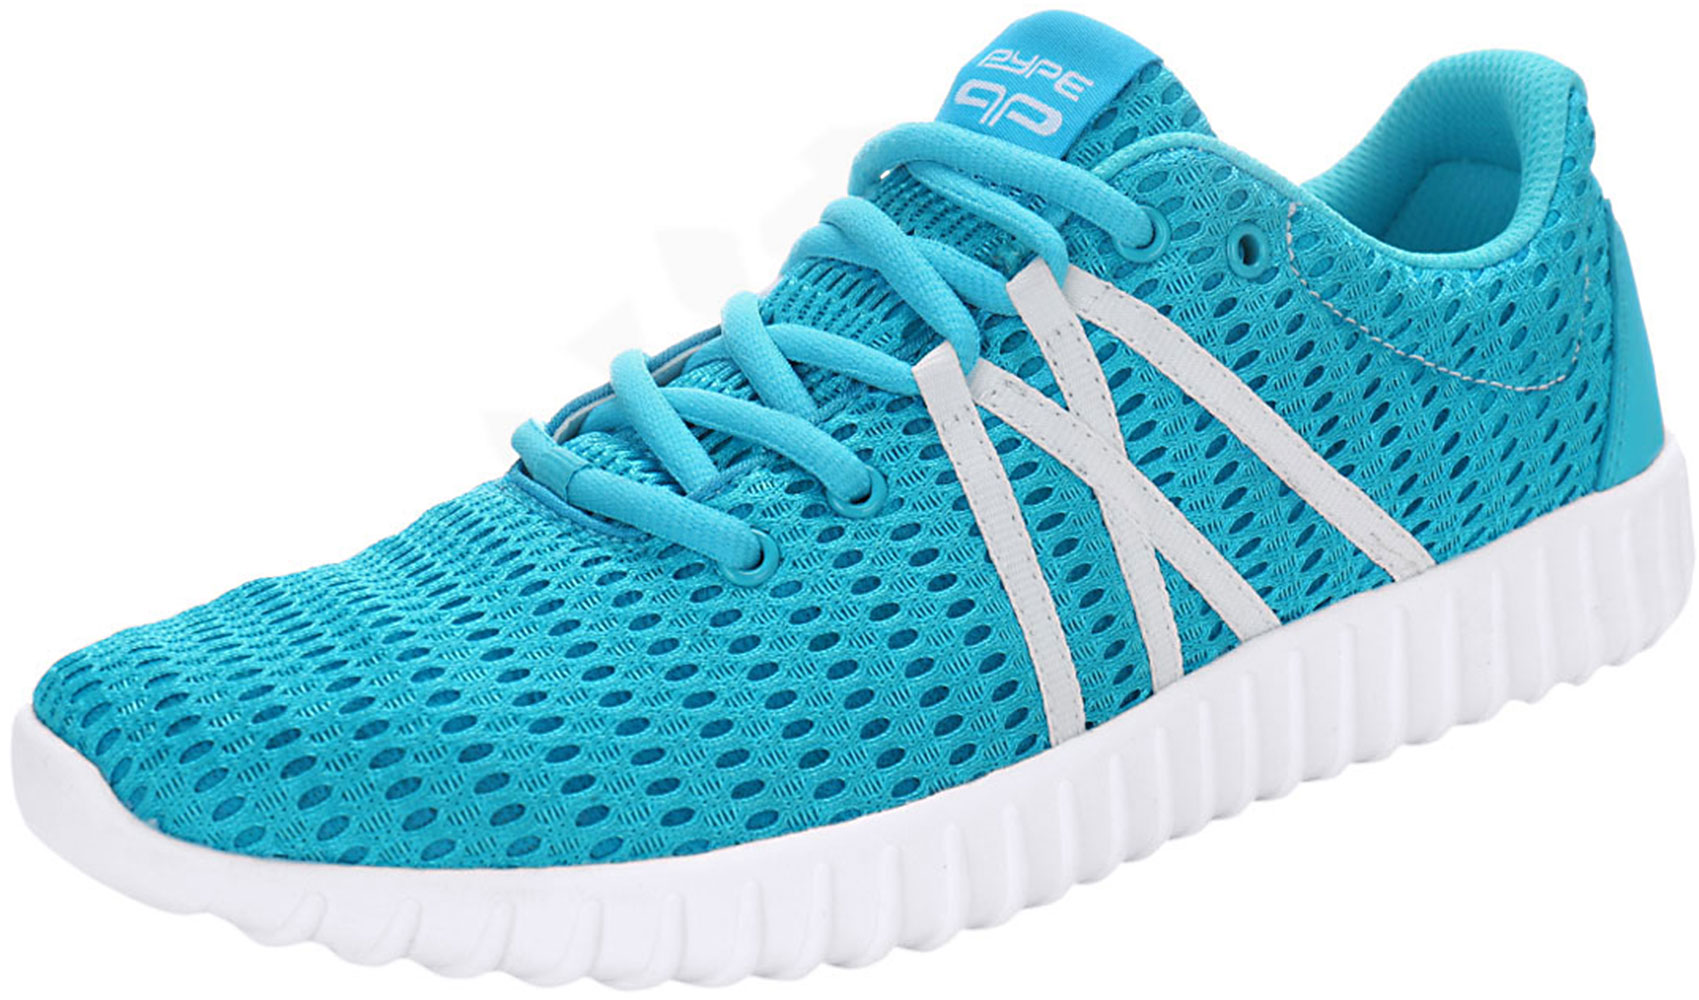 PYPE Women Contrast Color Lace Up Mesh Training Sneakers Blue US 7.5